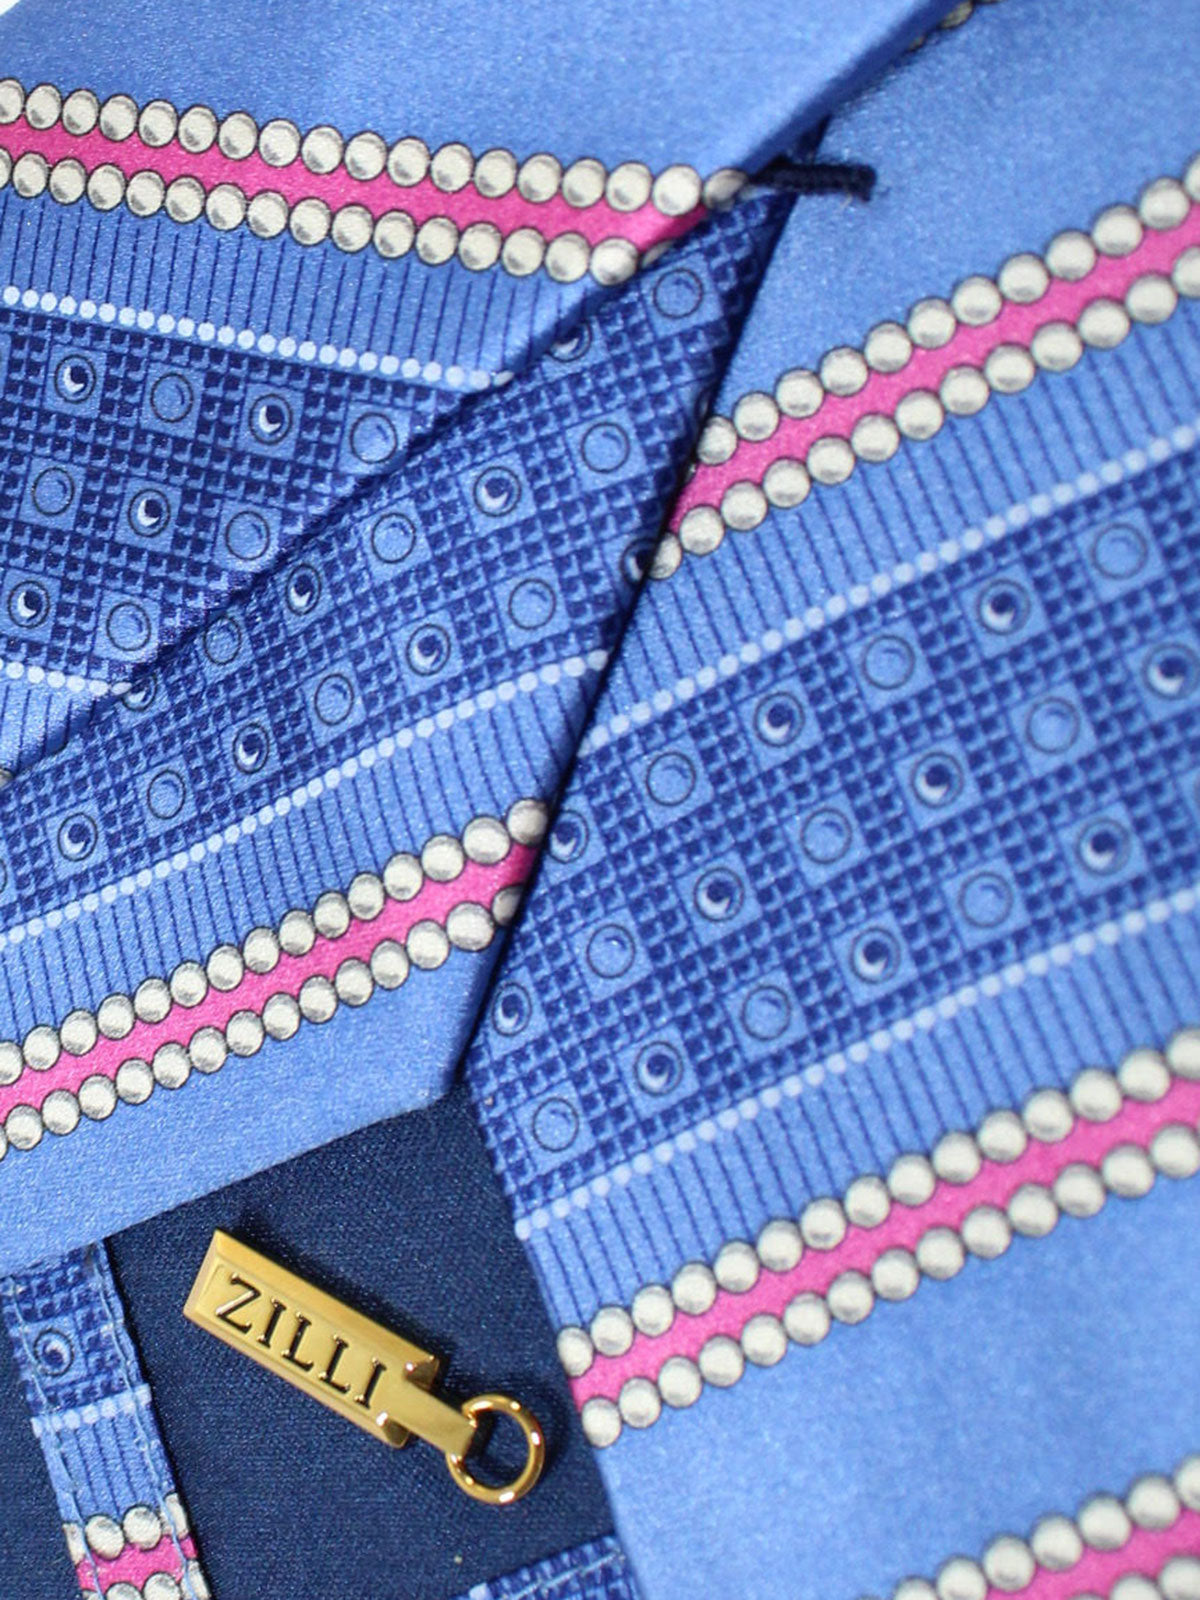 Zilli Silk Tie Blue Pink Stripes Design